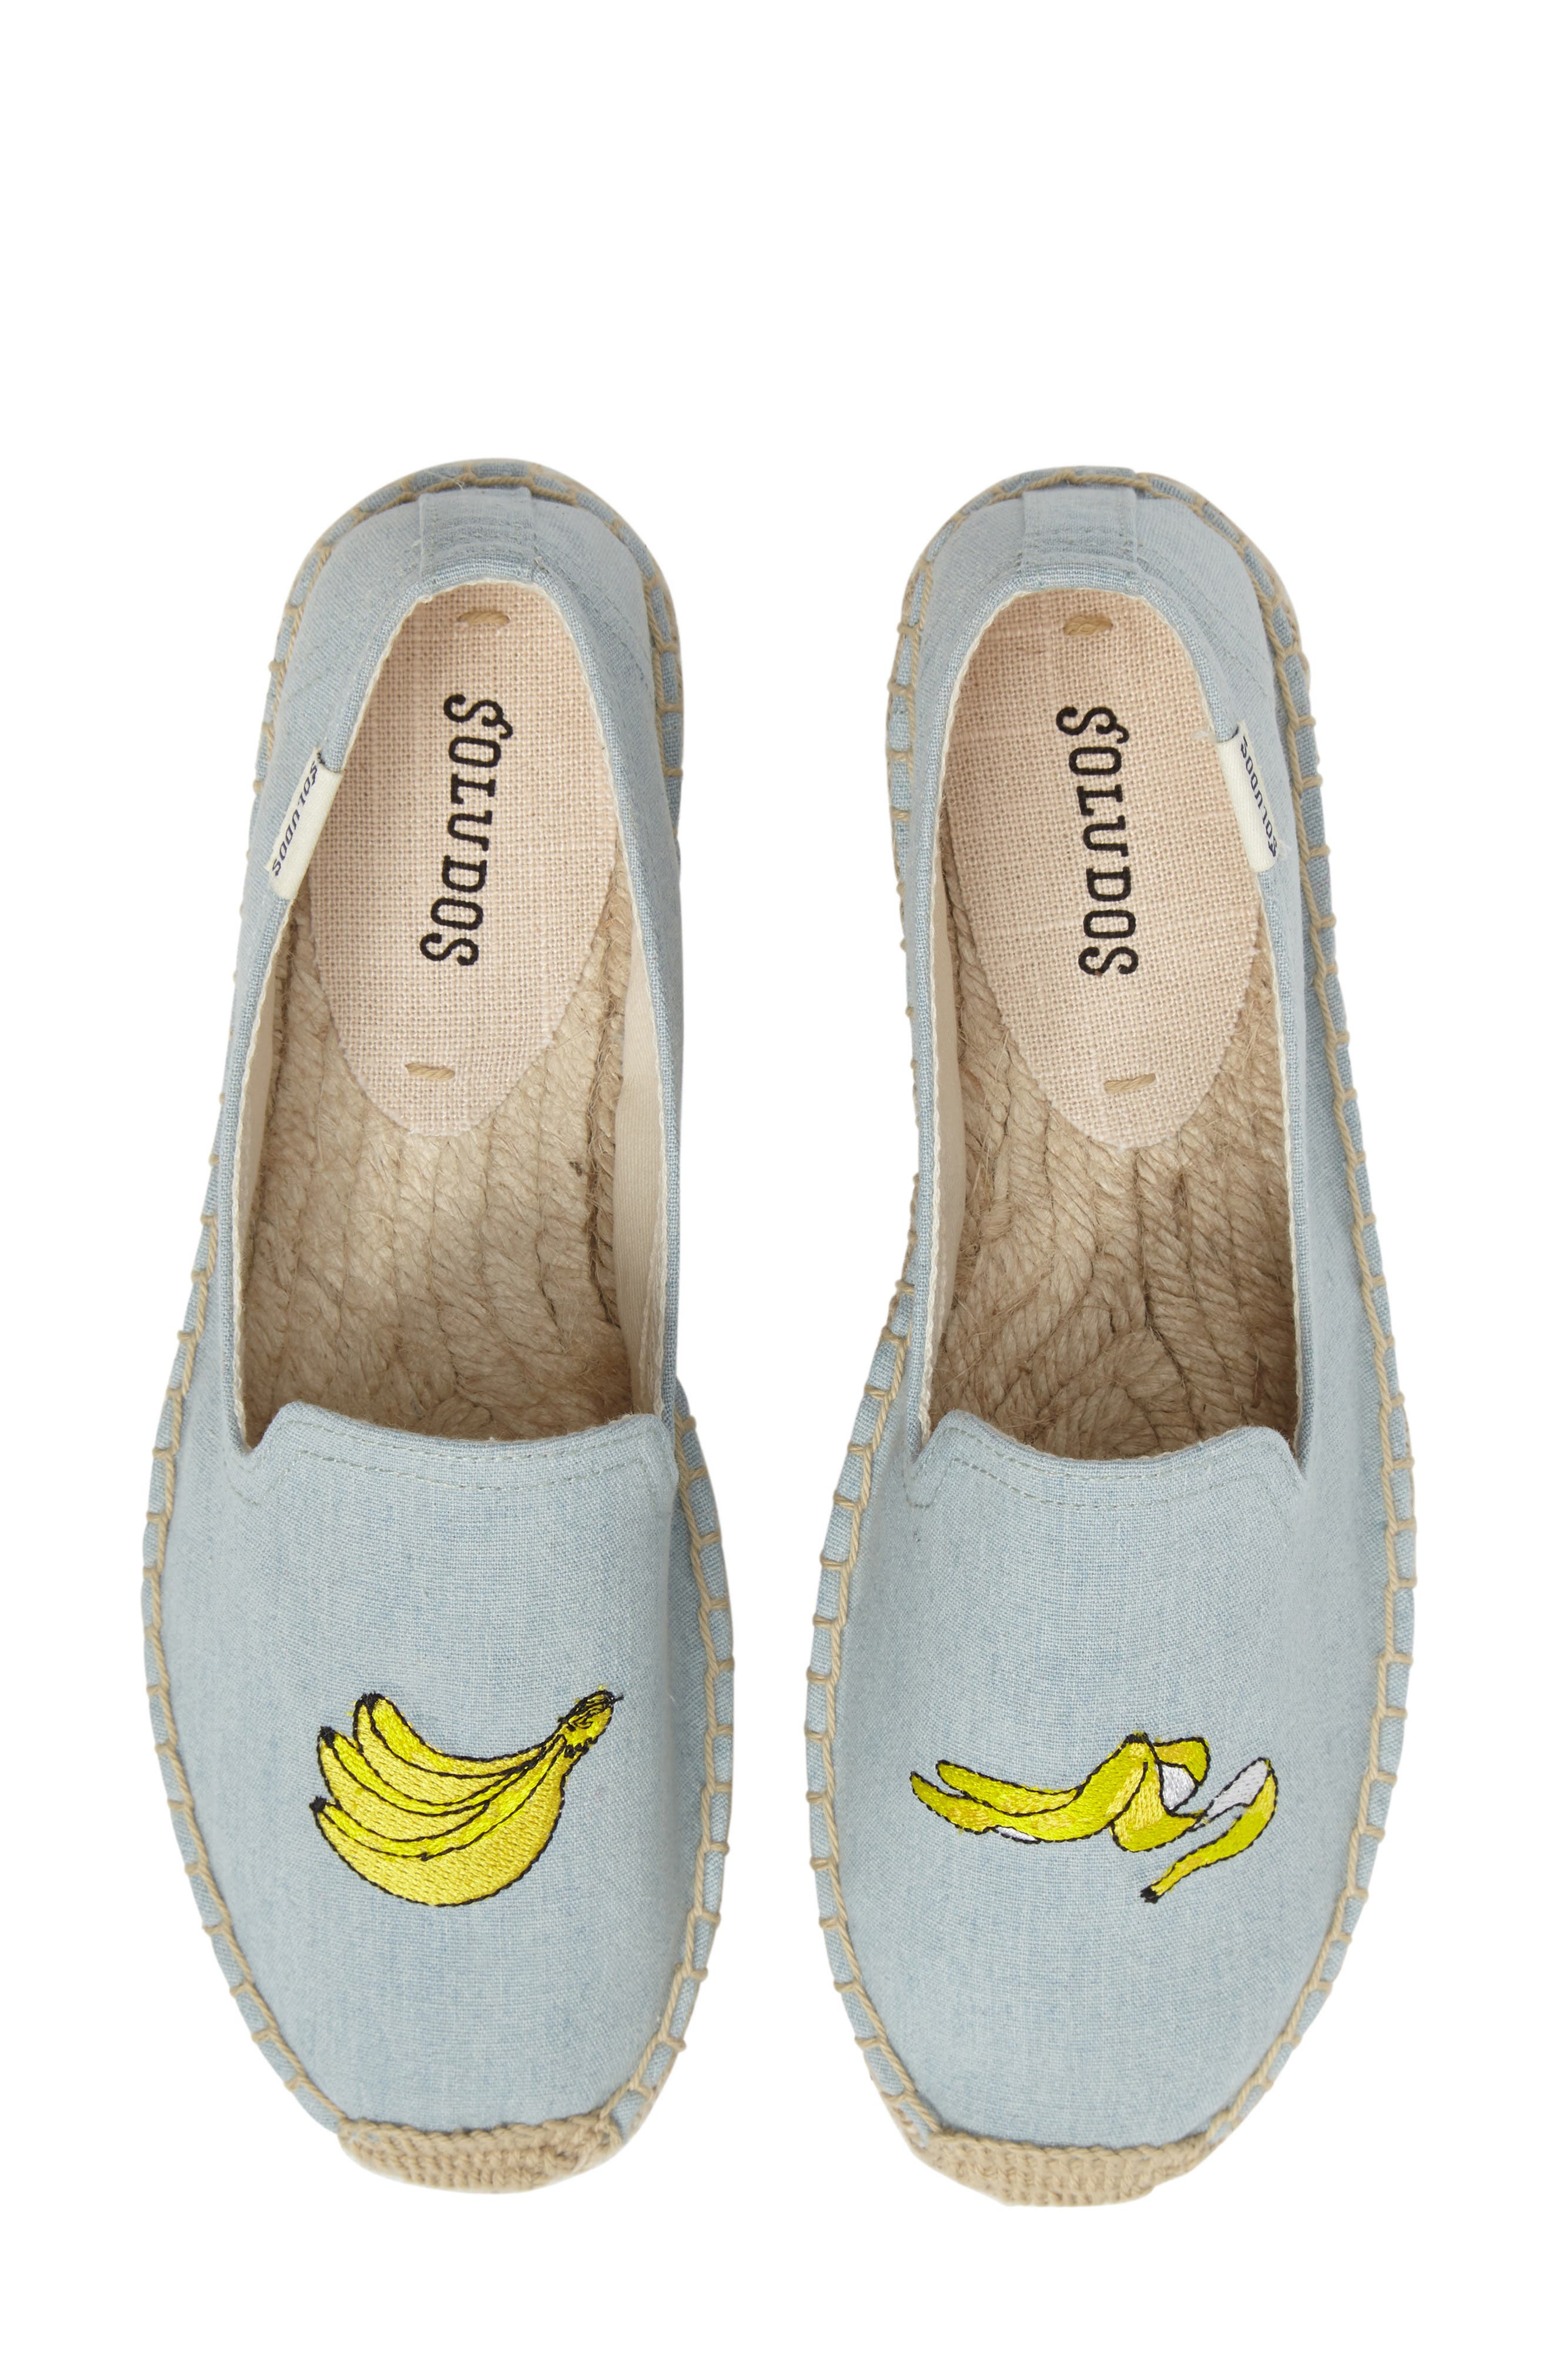 SOLUDOS Embroidered Espadrille Slip-On